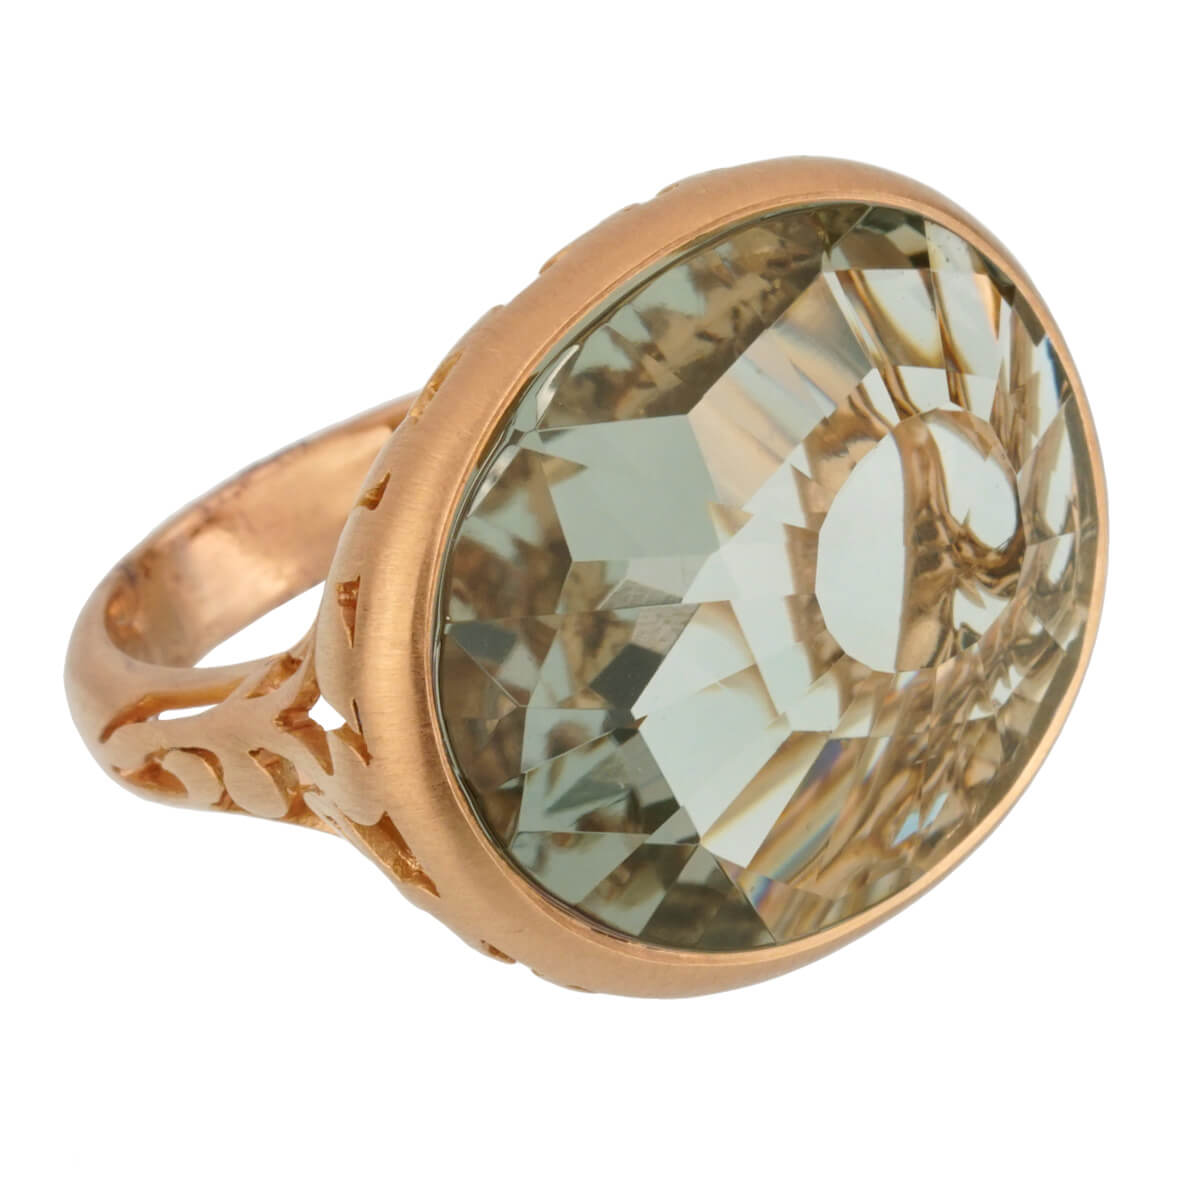 Pomellato 10.19 Carat Prasiolite Cocktail Rose Gold Ring Sz 6 3/4